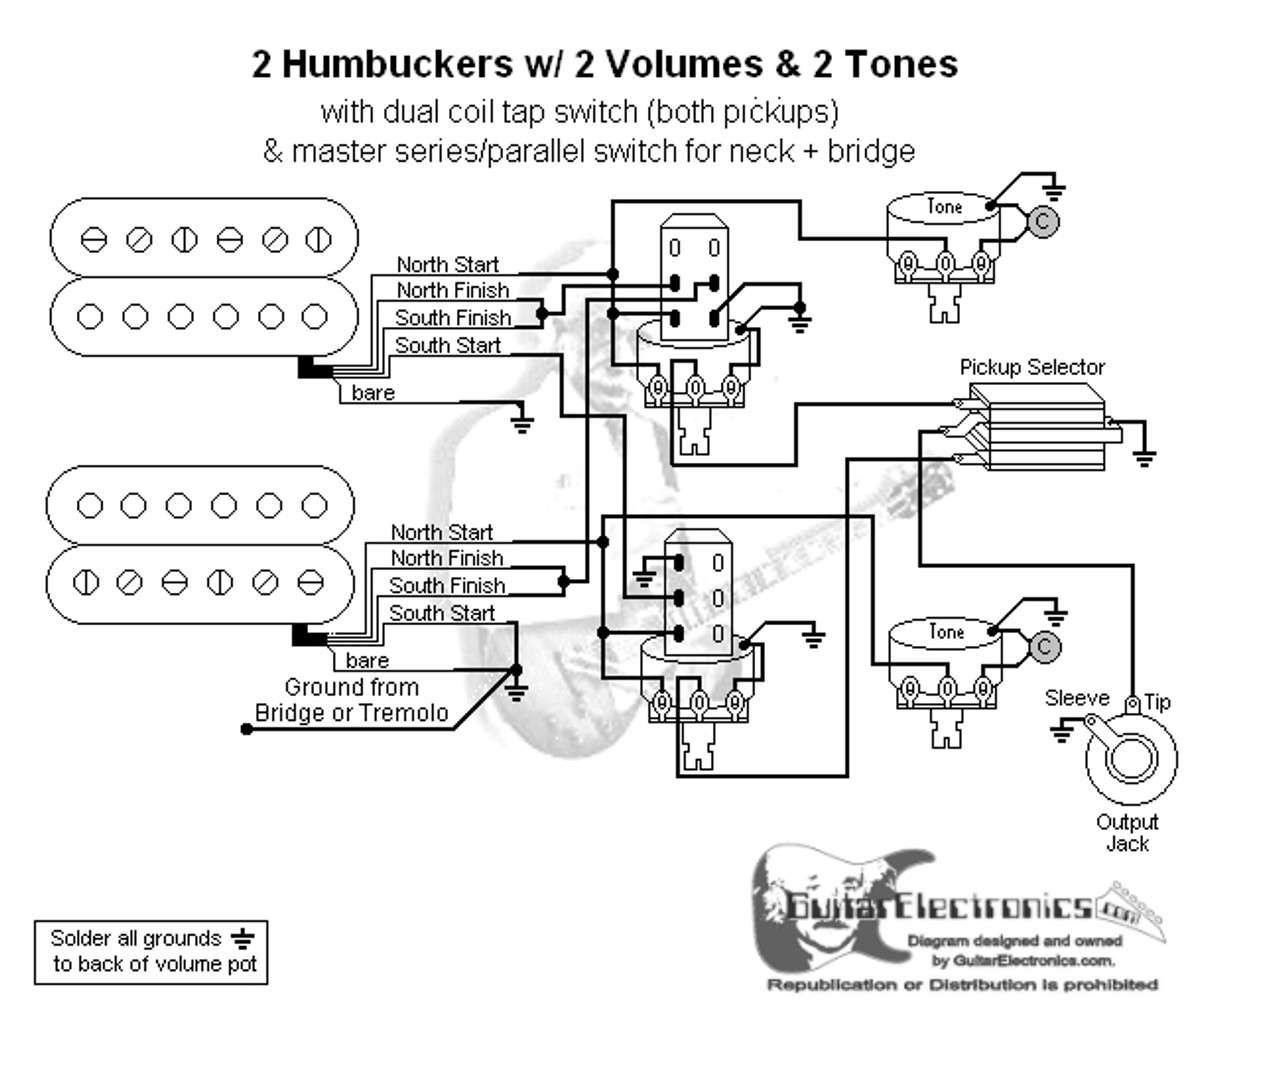 hight resolution of home 3 pickup les paul wiring diagram 2 hbs 3 way toggle 2 vol 2 tones coil tap u0026 series parallel